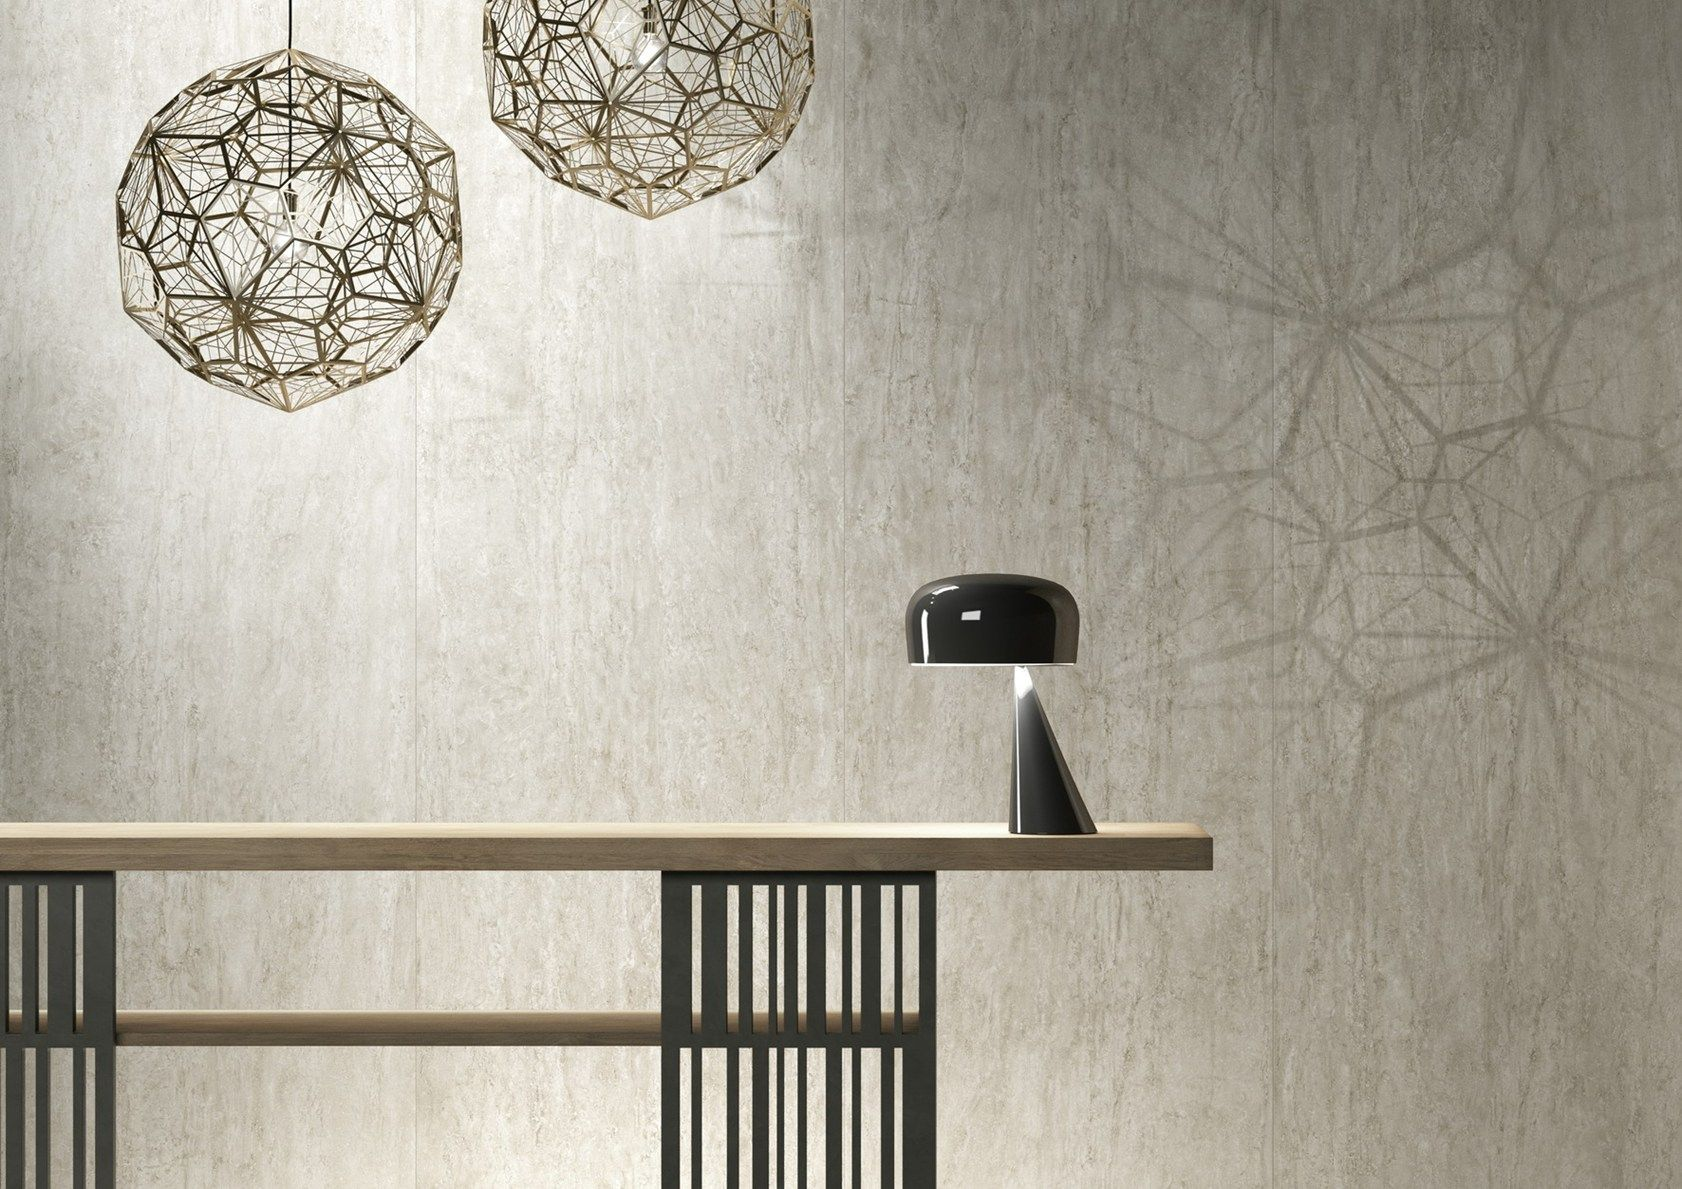 cersaie 2013 the incredibly realistic proposals of lea. Black Bedroom Furniture Sets. Home Design Ideas